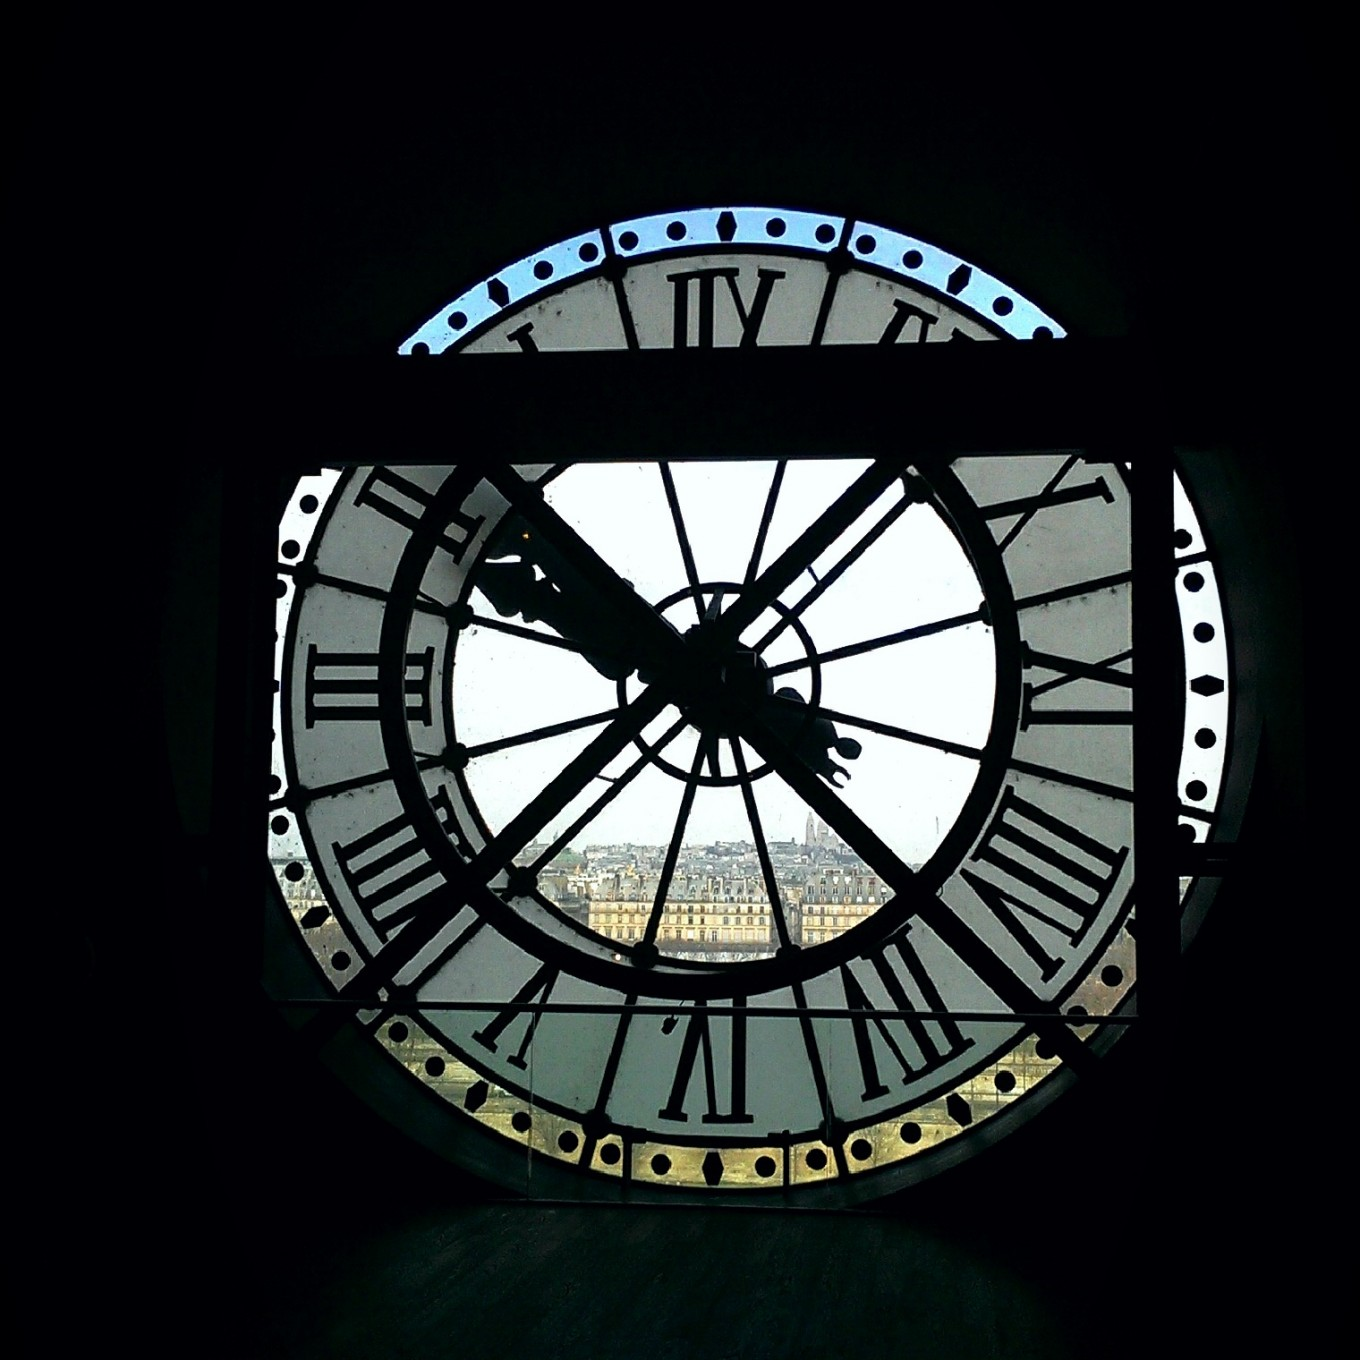 Le voyage : une question de timing, Musée d'Orsay, France